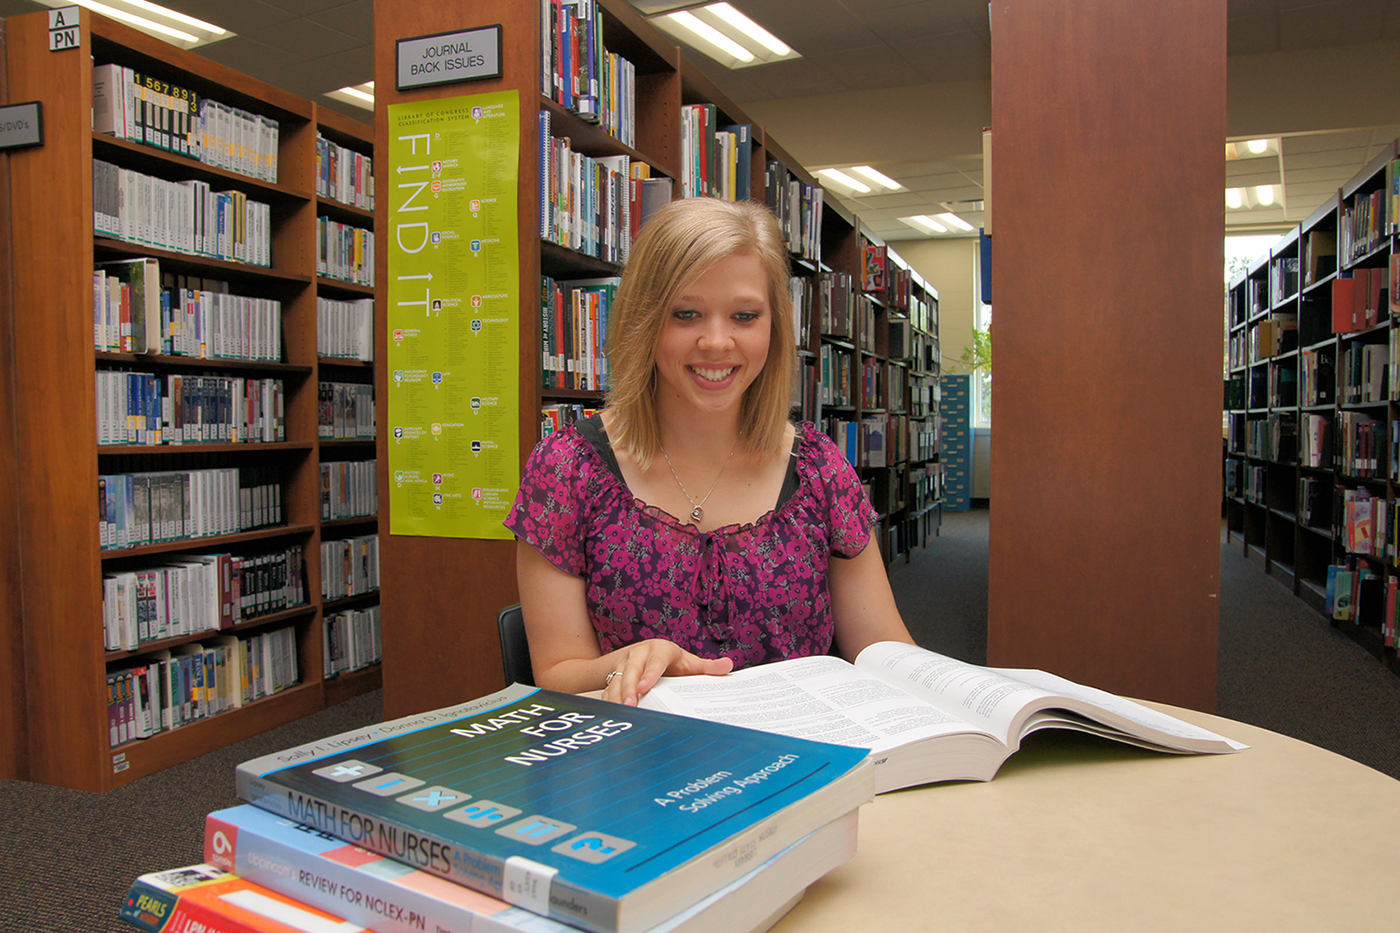 ohio university electronic theses and dissertation The ohio state university is a founding member of the ohio at the university are published online at the ohiolink electronic theses & dissertations.